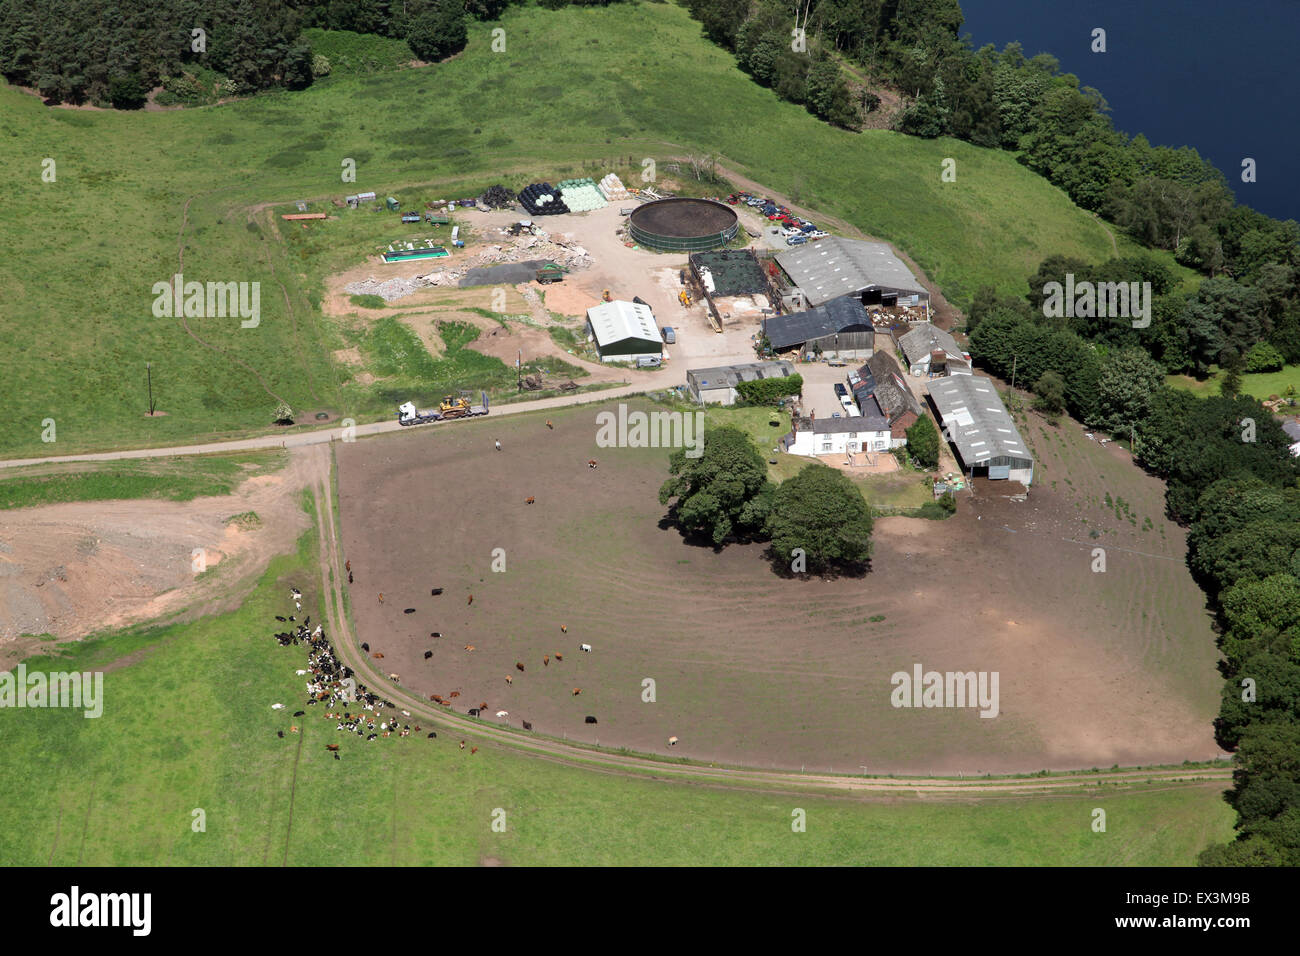 aerial view of a Cheshire dairy farm with cows and farm buildings, UK - Stock Image